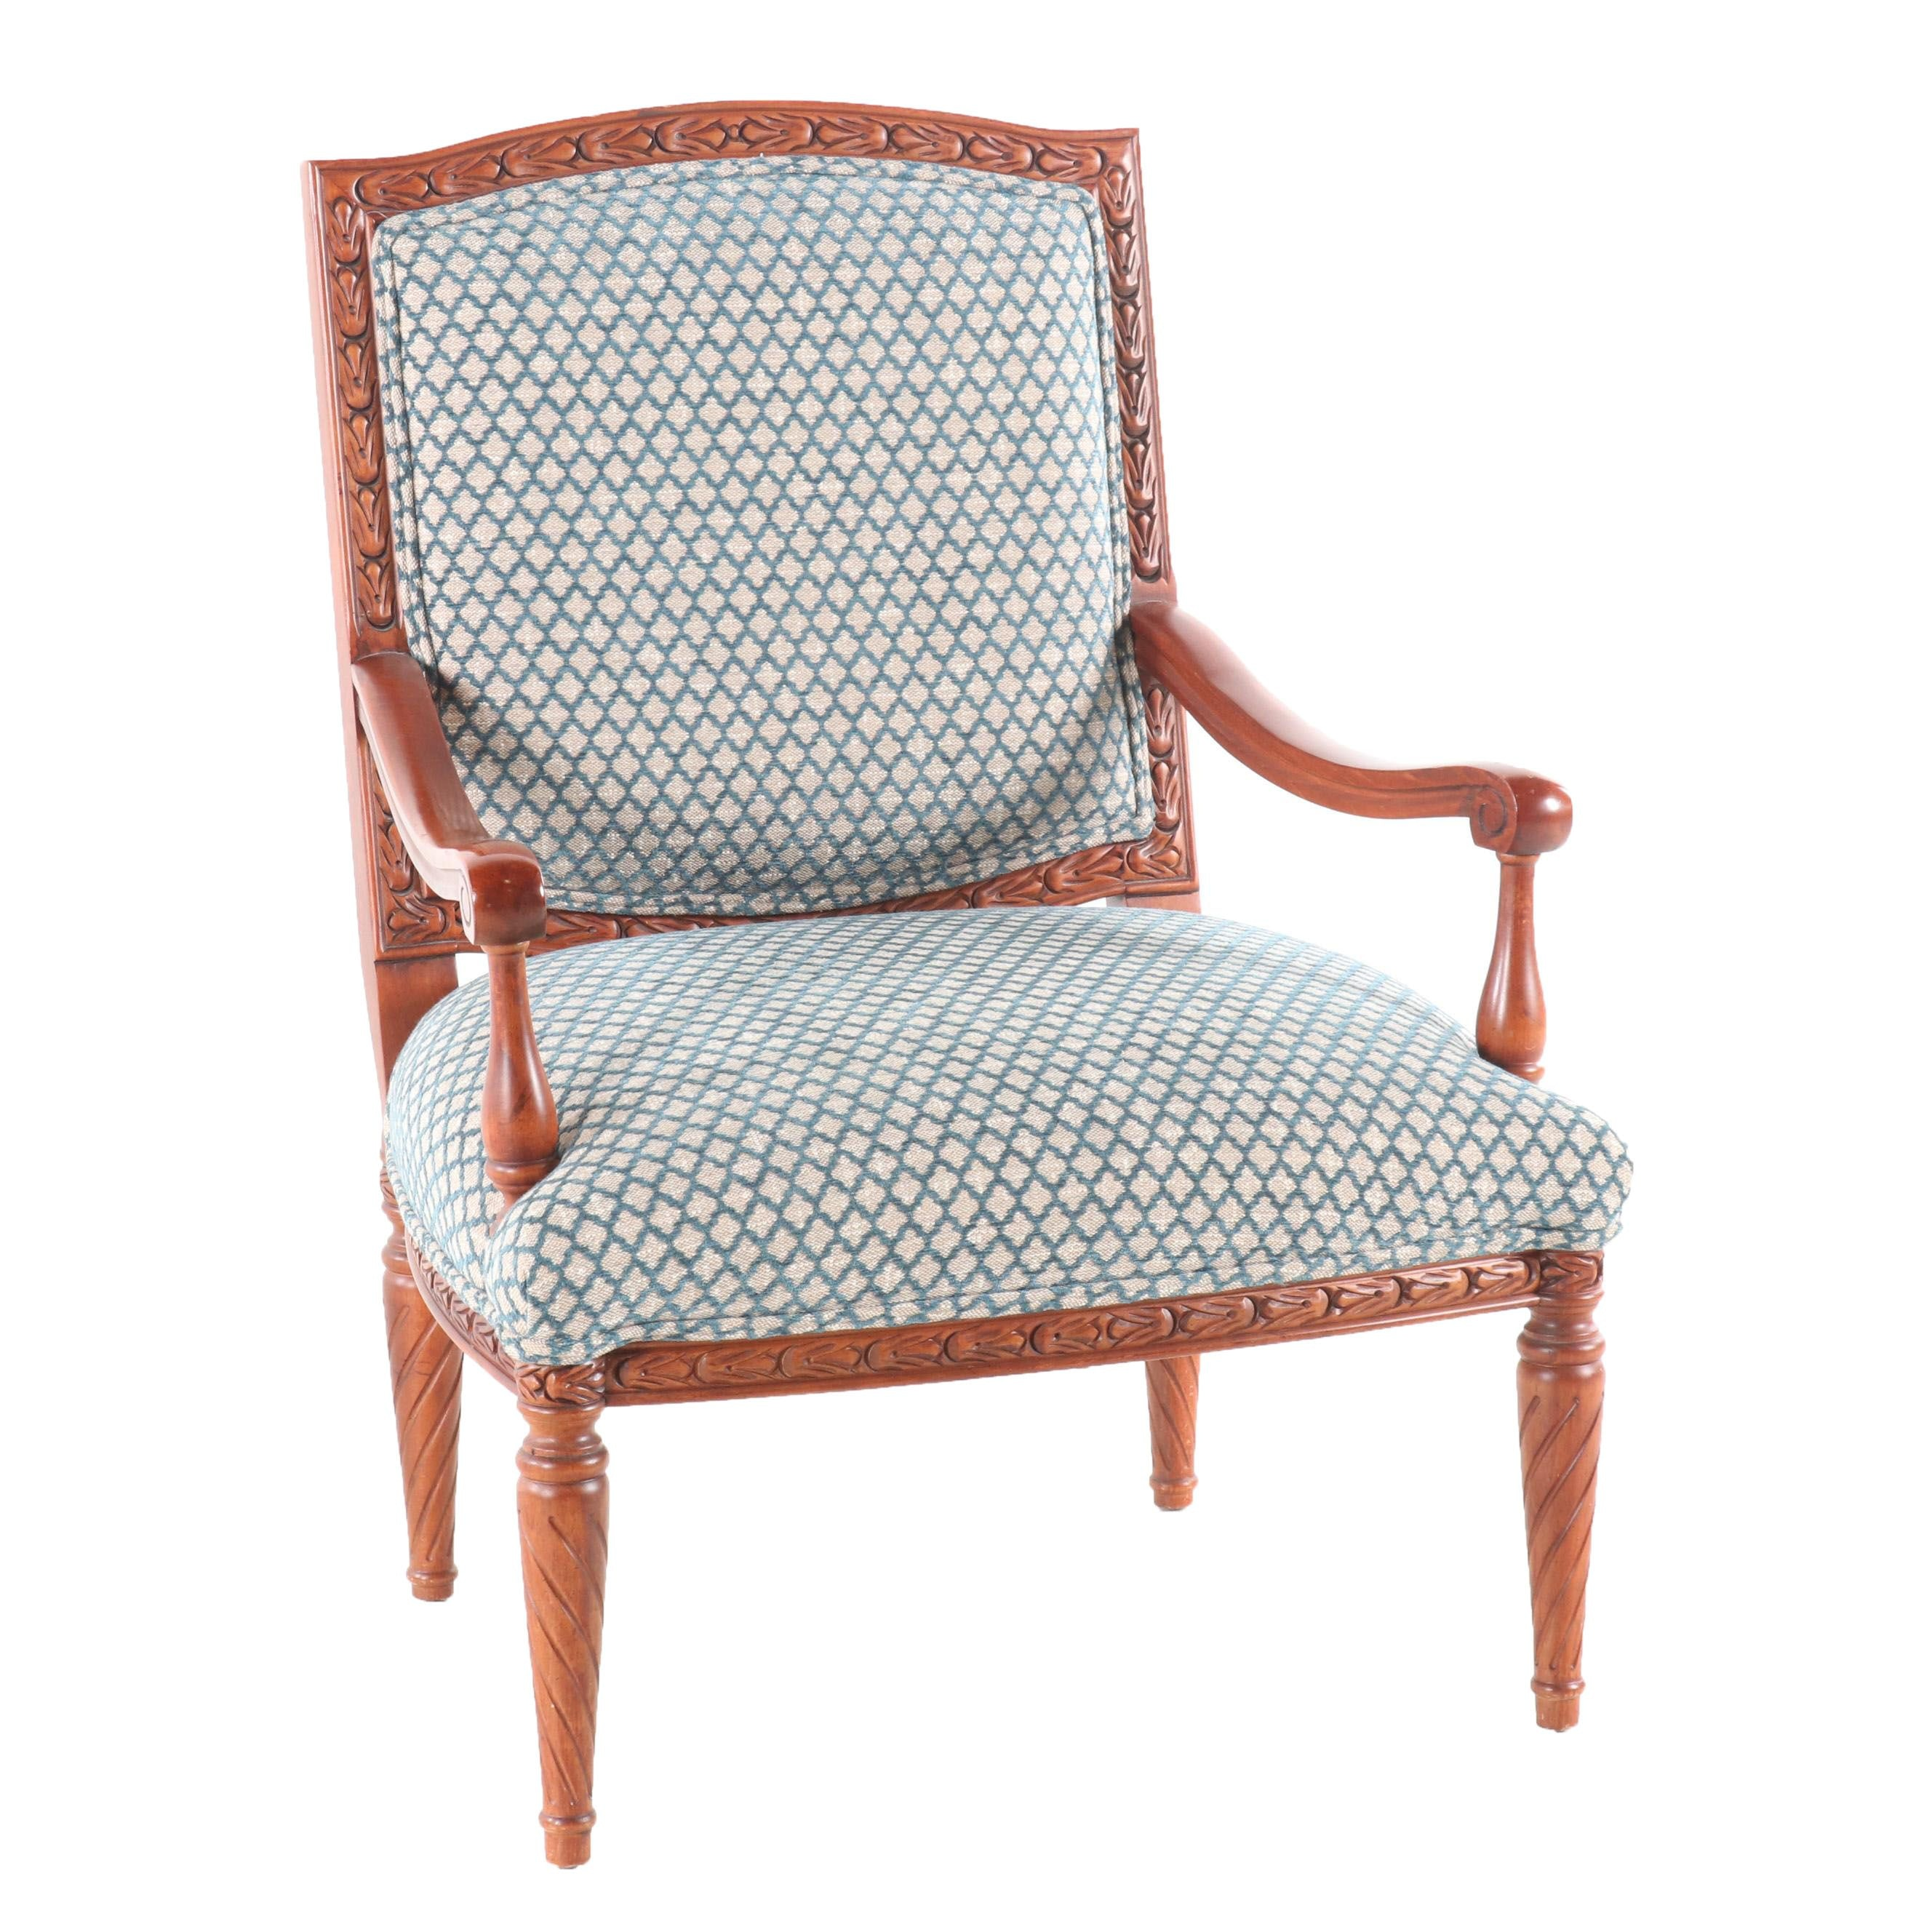 Transitional Upholstered Wooden Arm Chair by Sam Moore Furniture, Contemporary